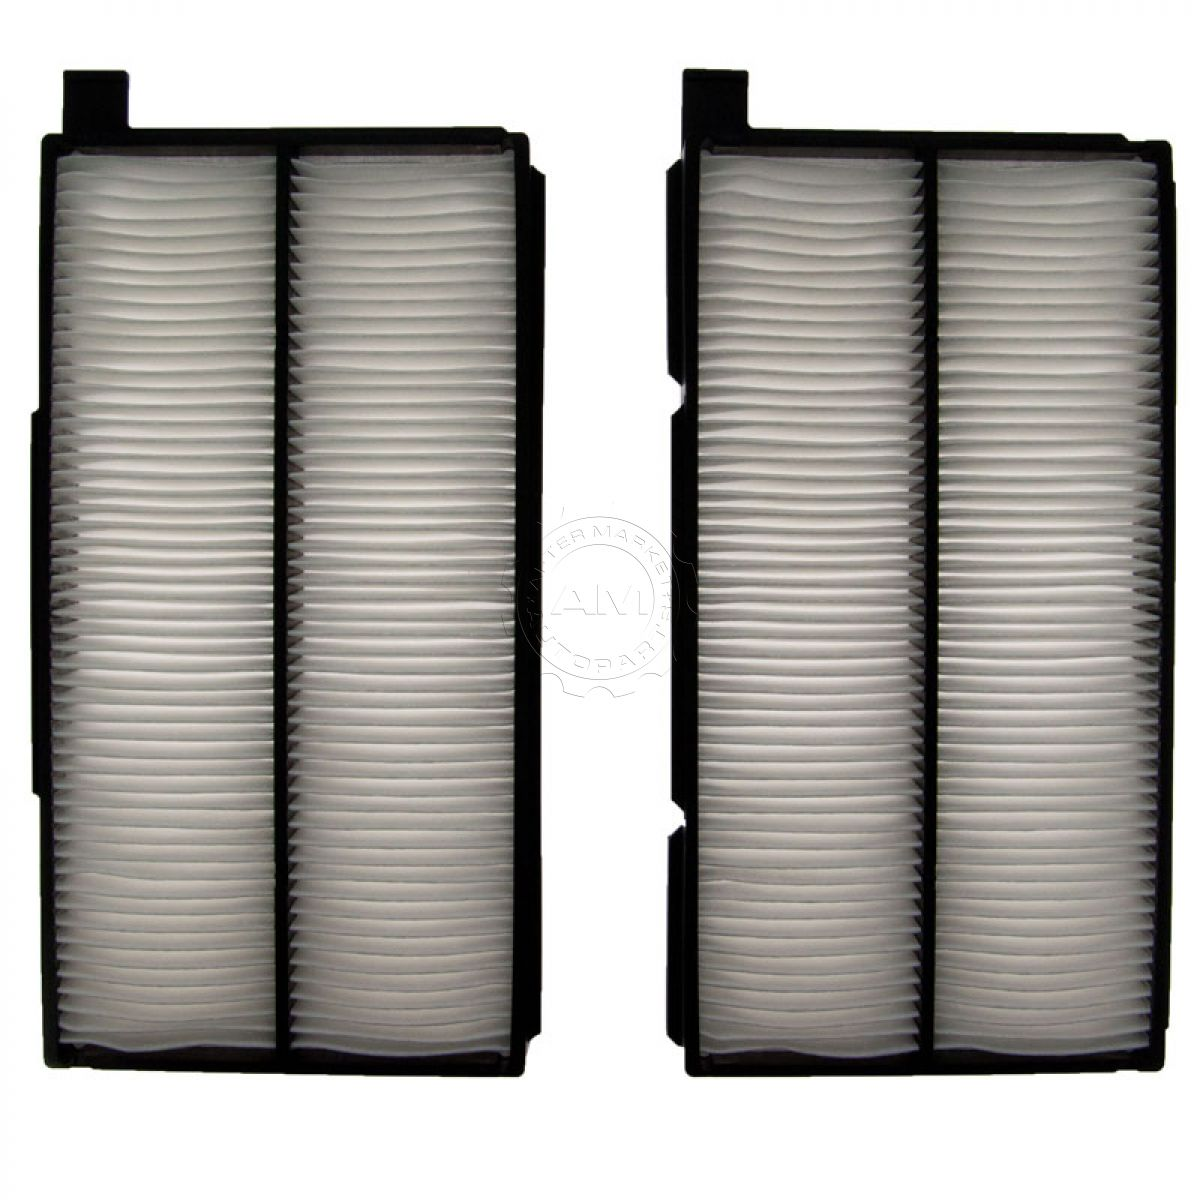 Cabin Air Filter TYC 800068P2 fits 99-04 Chevrolet Tracker